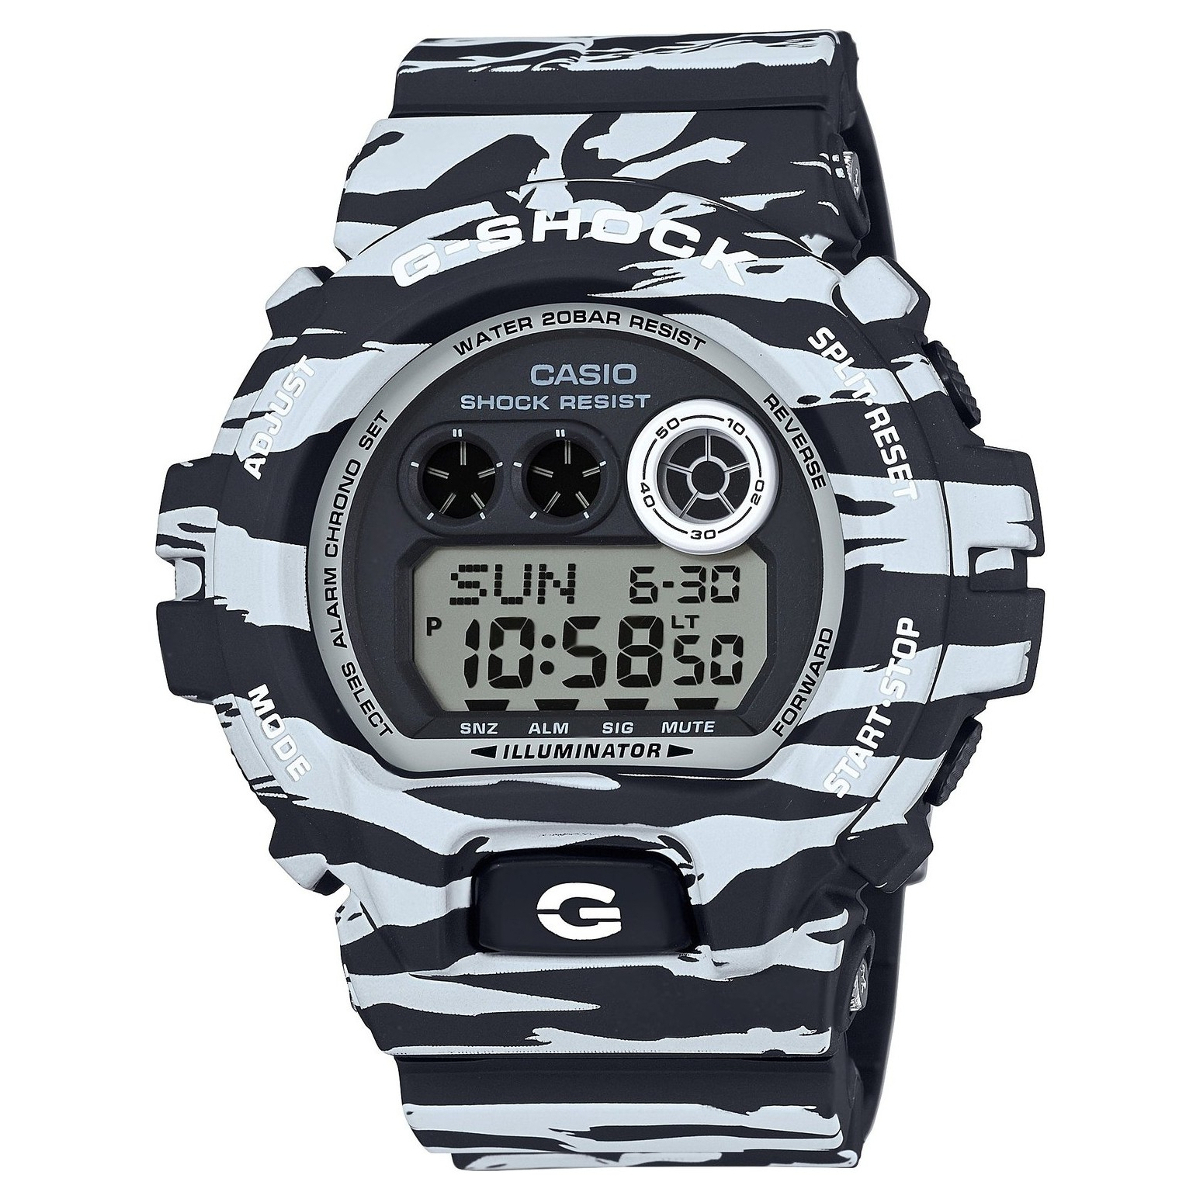 Casio G-shock GD-X6900BW-1E gf7carkit driver high quality headsets business earbuds hands free earphones phone bluetooth car kit with car charger